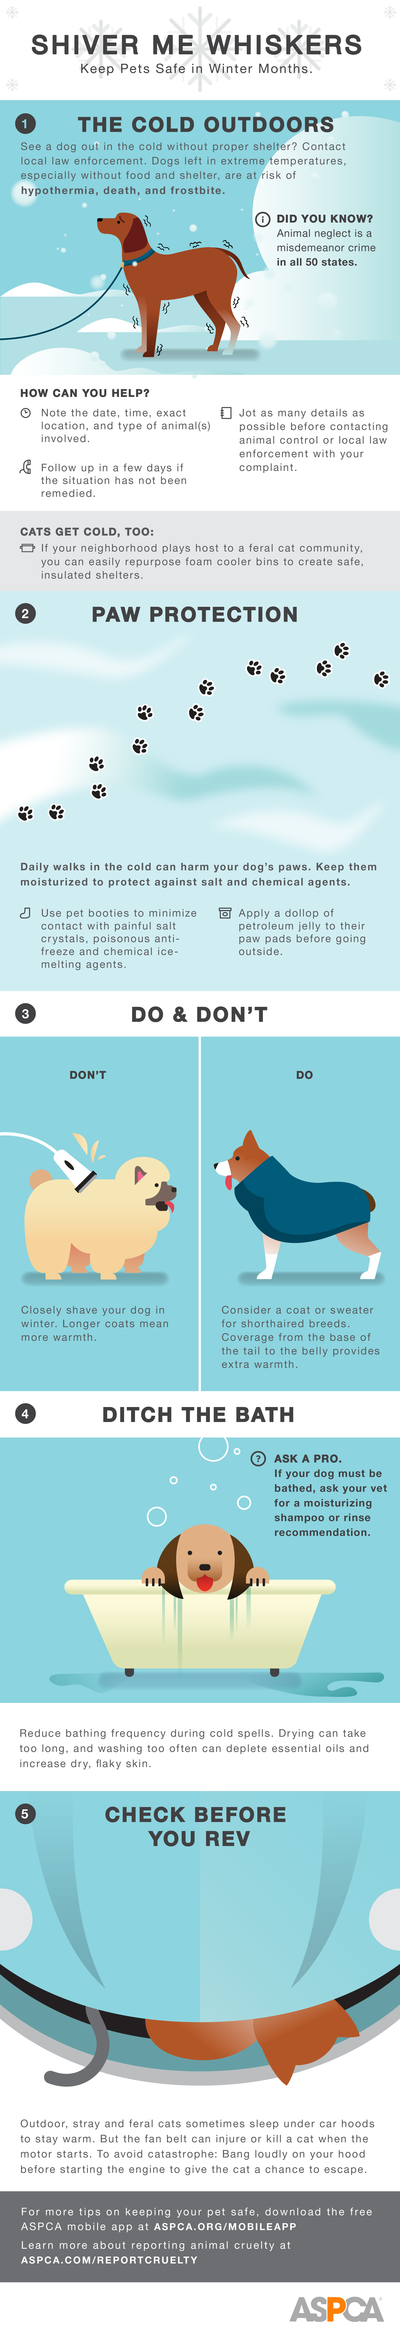 ASPCA Cold Weather Infographic